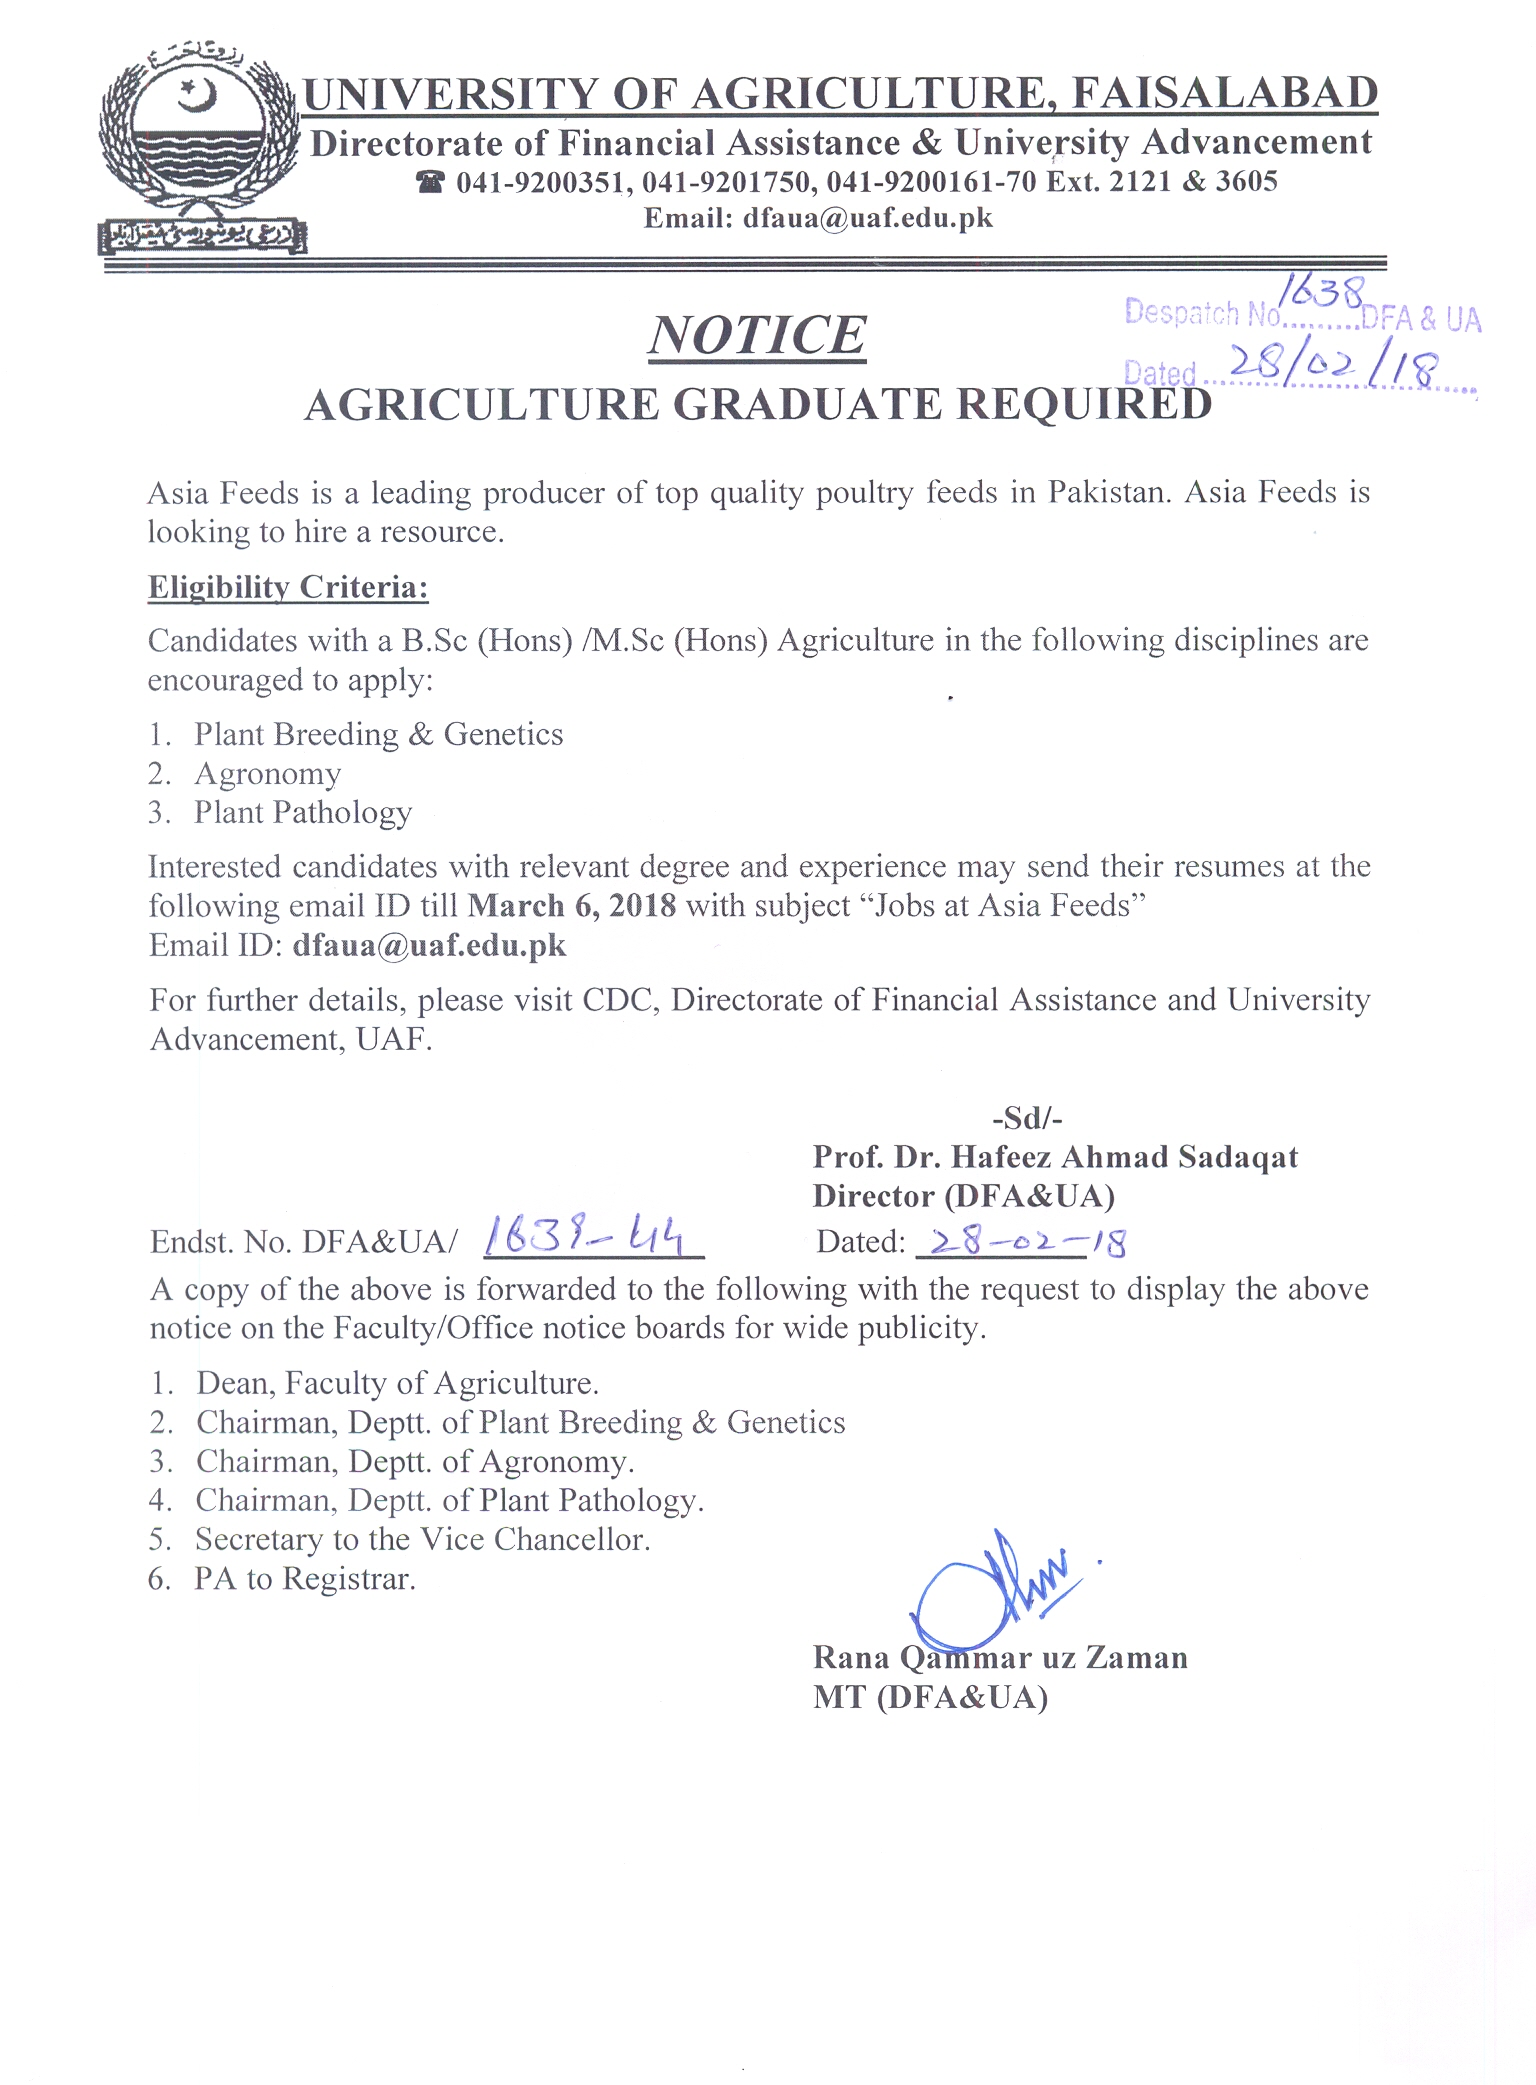 University of Agriculture, Faisalabad, Pakistan -> Job